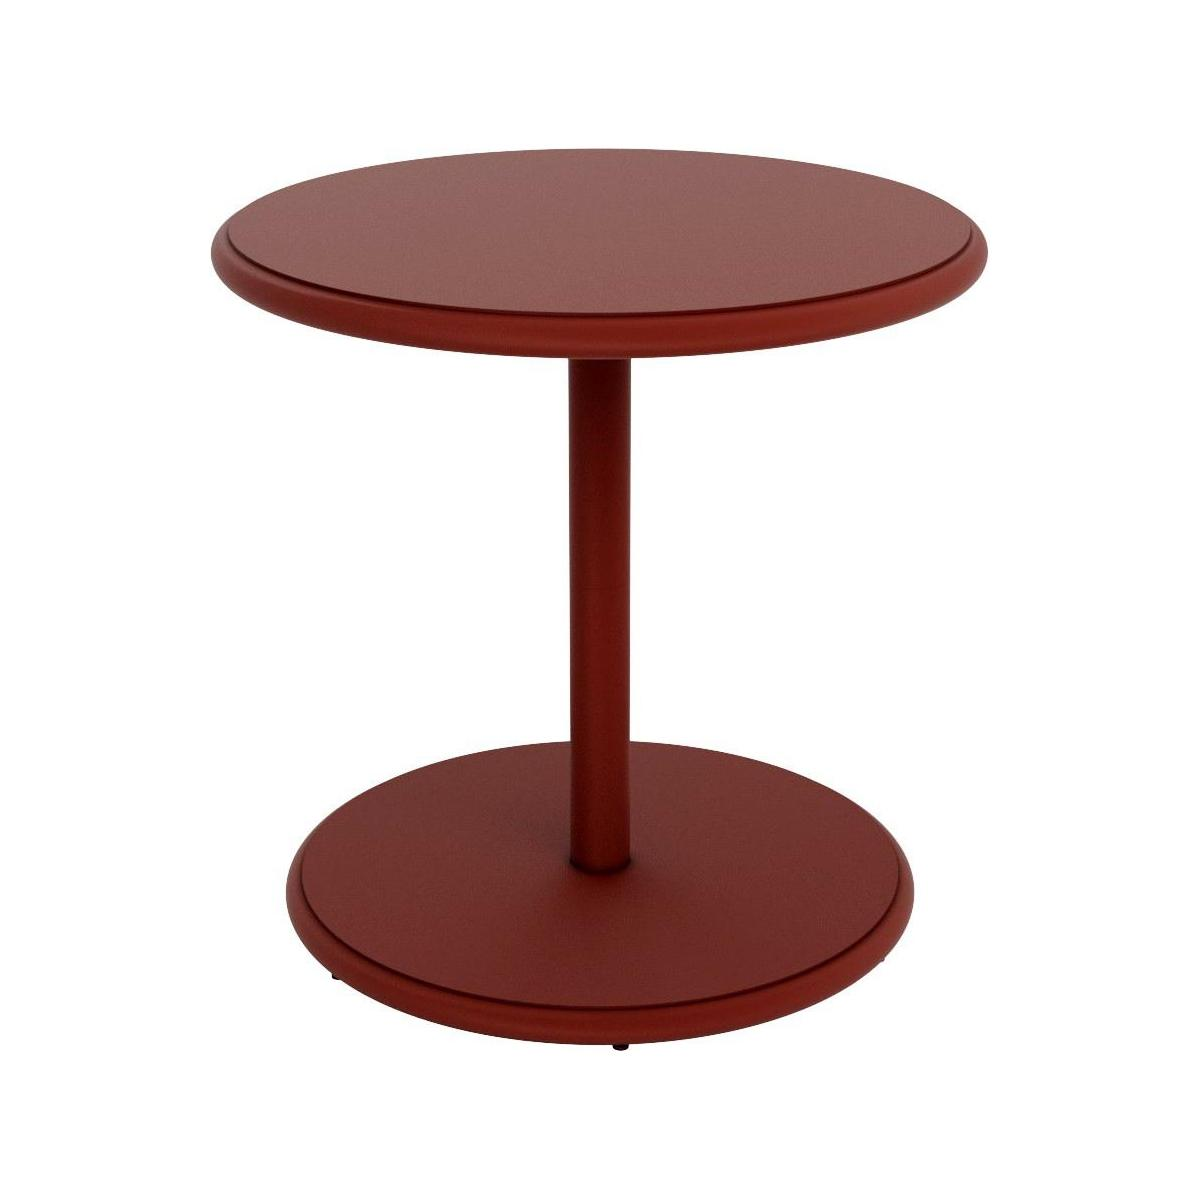 Table d'appoint ronde en aluminium - Rouge n°1